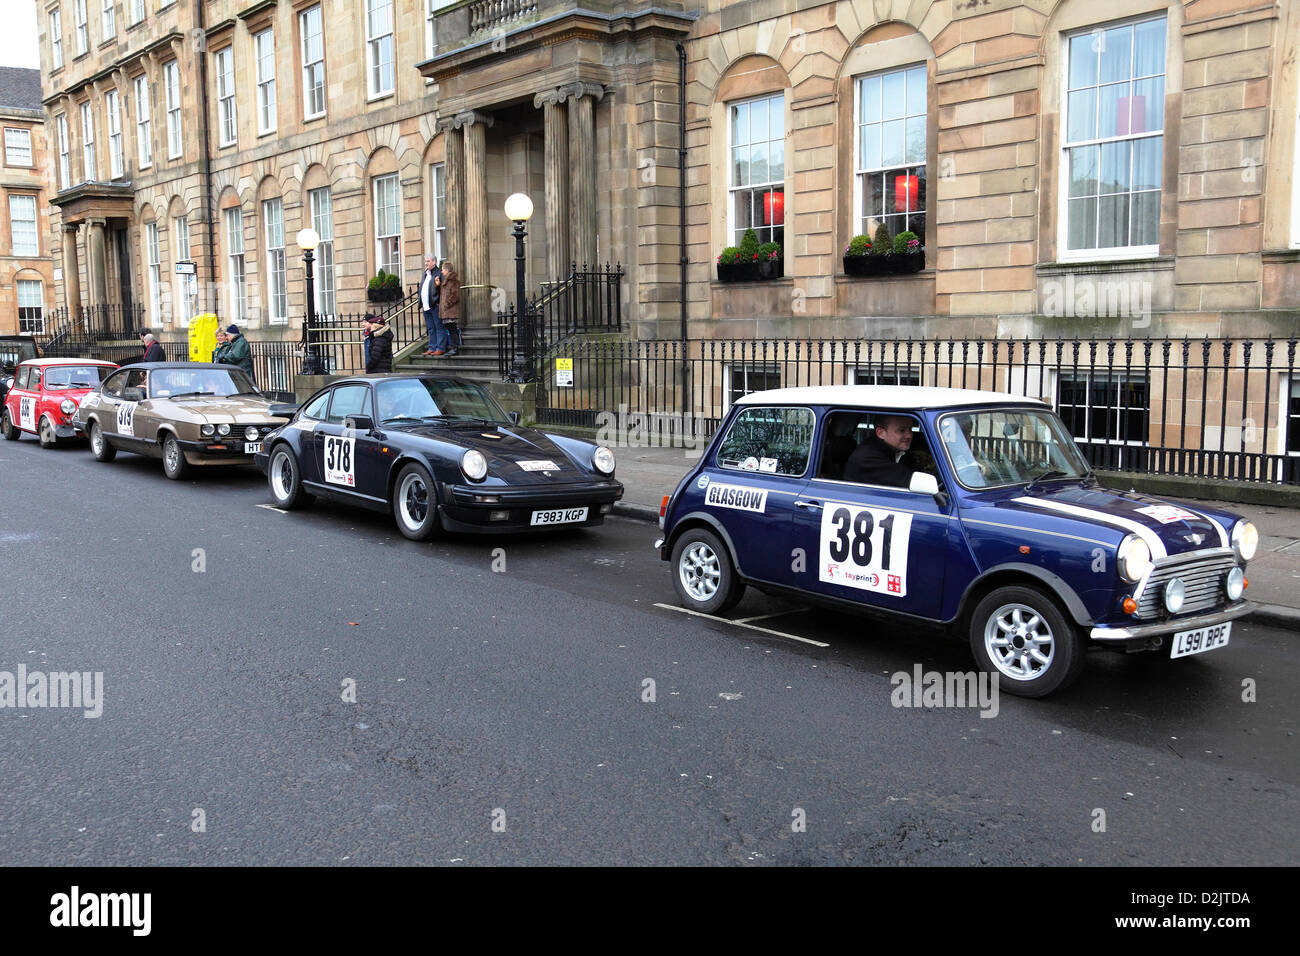 Participants after the start of the Monte Carlo Rally in Glasgow, Scotland, UK Credit:  Kenny Williamson / Alamy - Stock Image